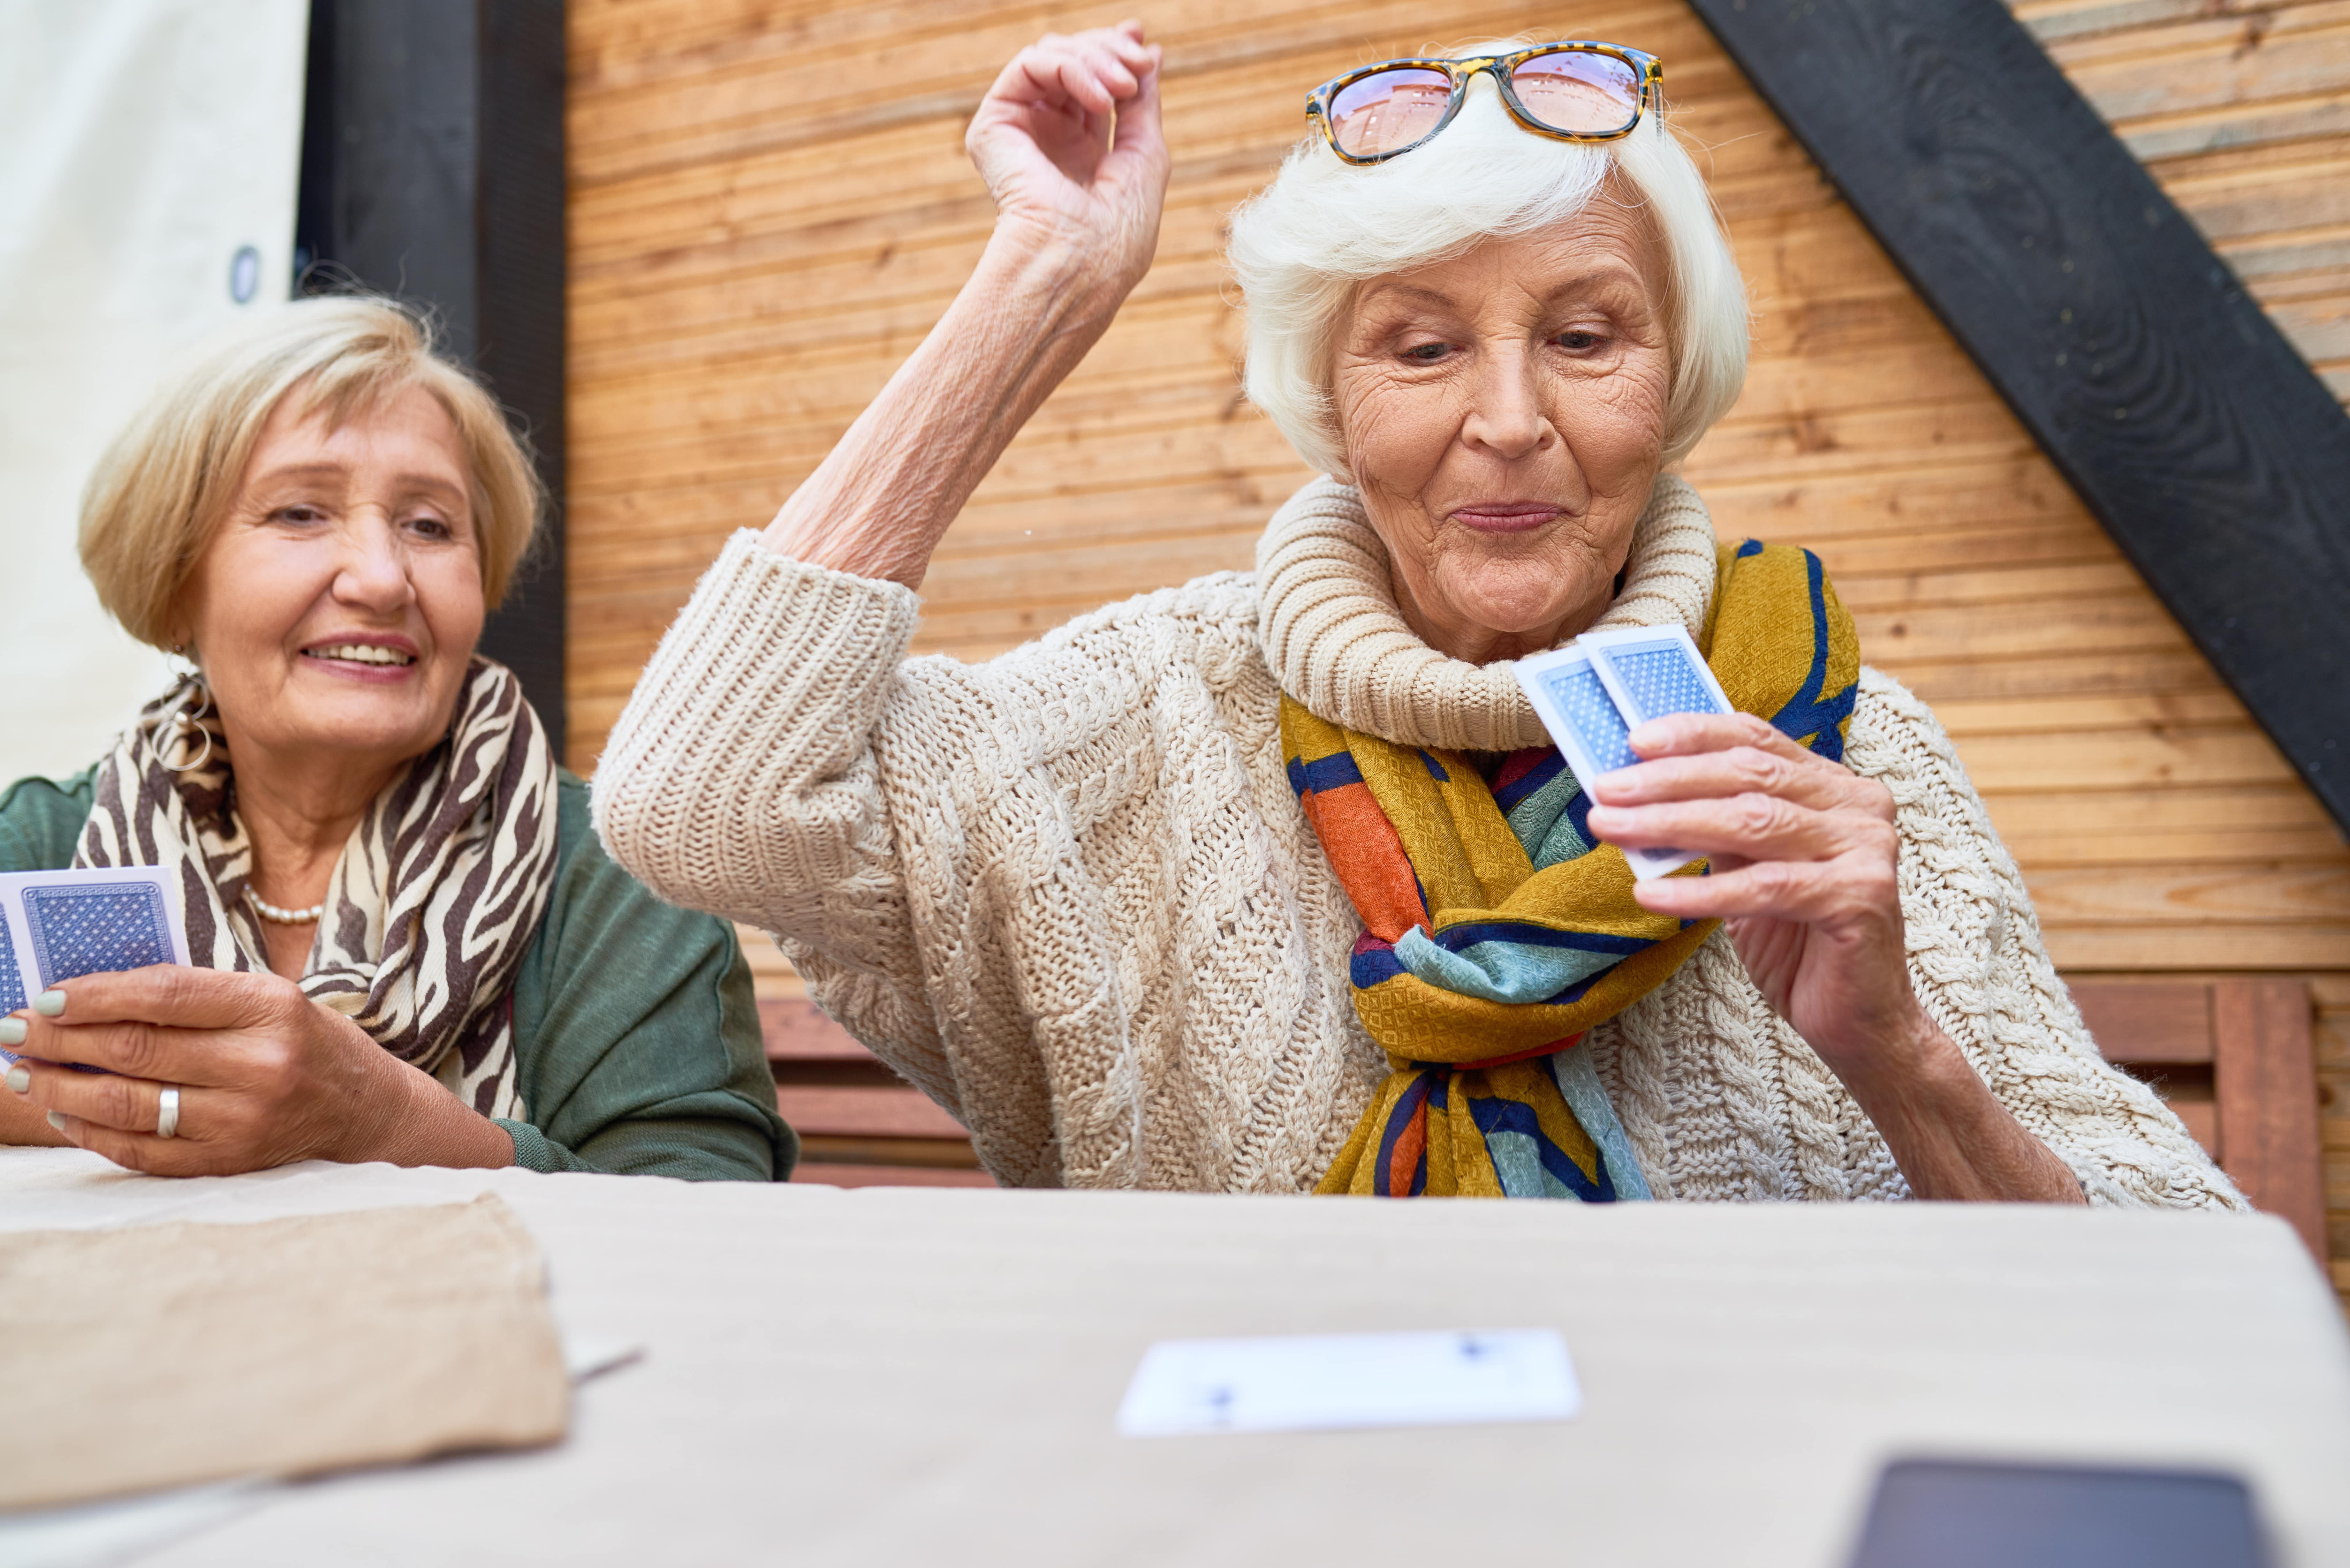 Game Night: 6 Games to Play in Your Assisted Living Apartment